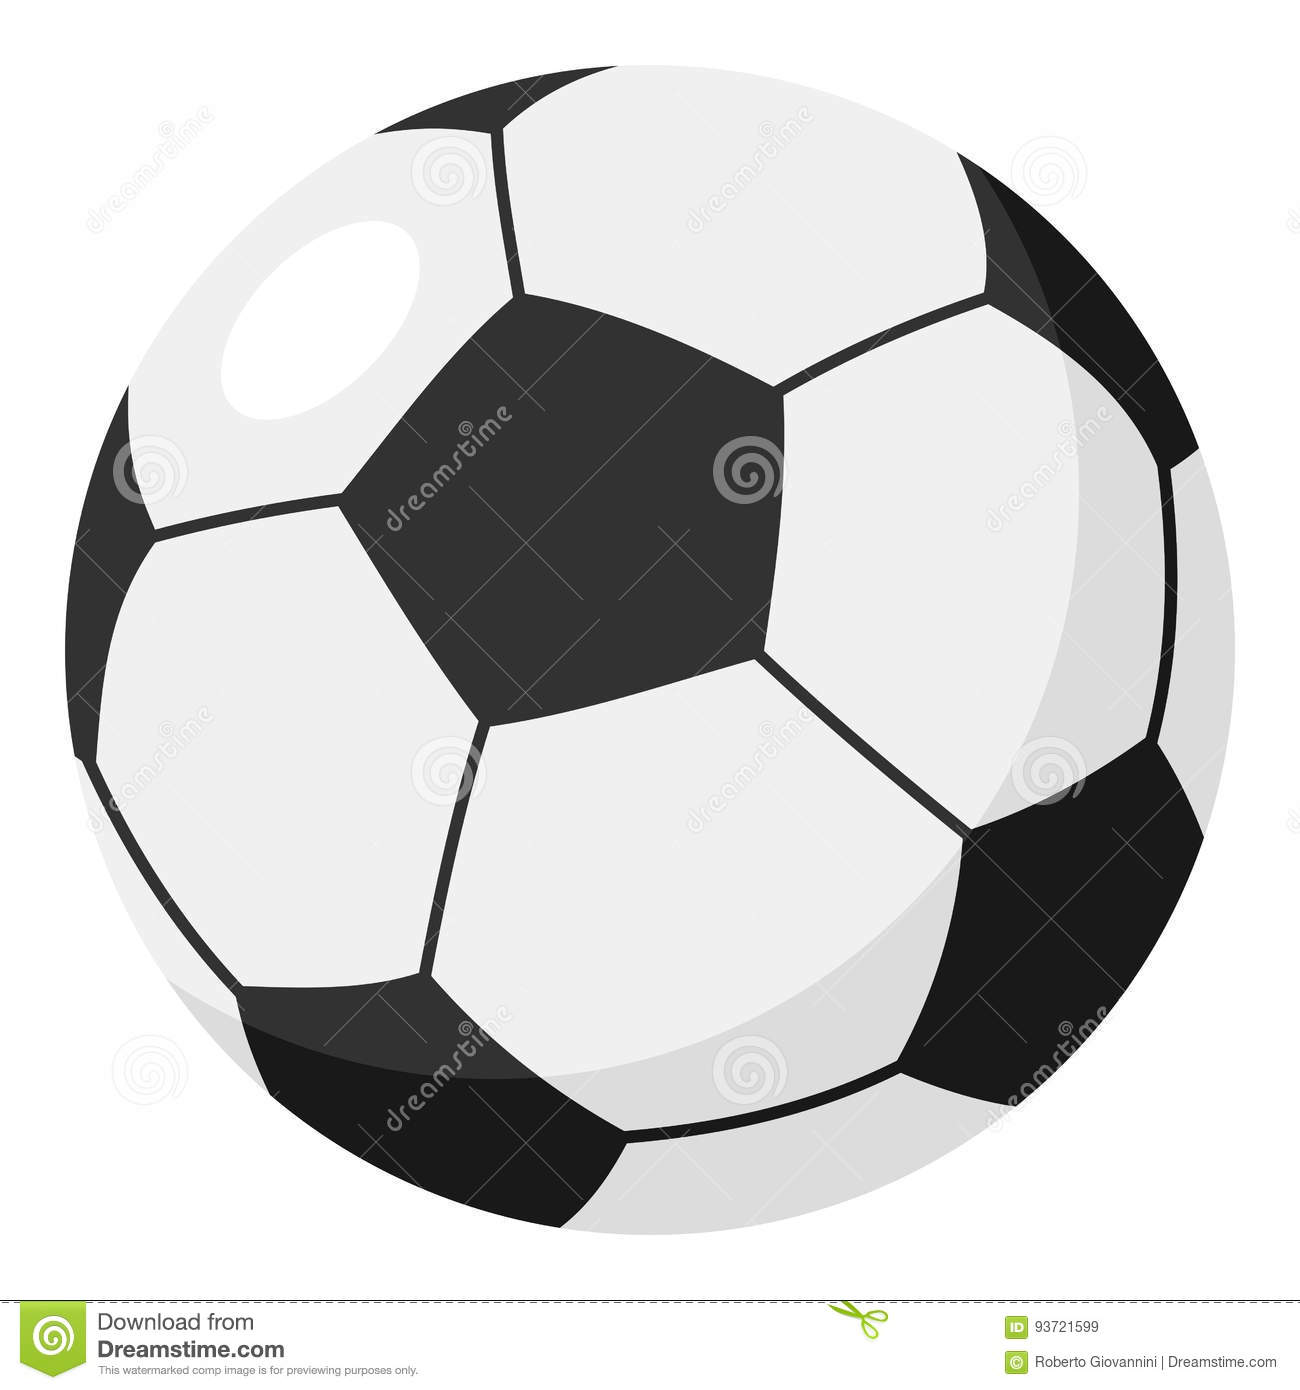 Football or Soccer Ball Flat Icon on White